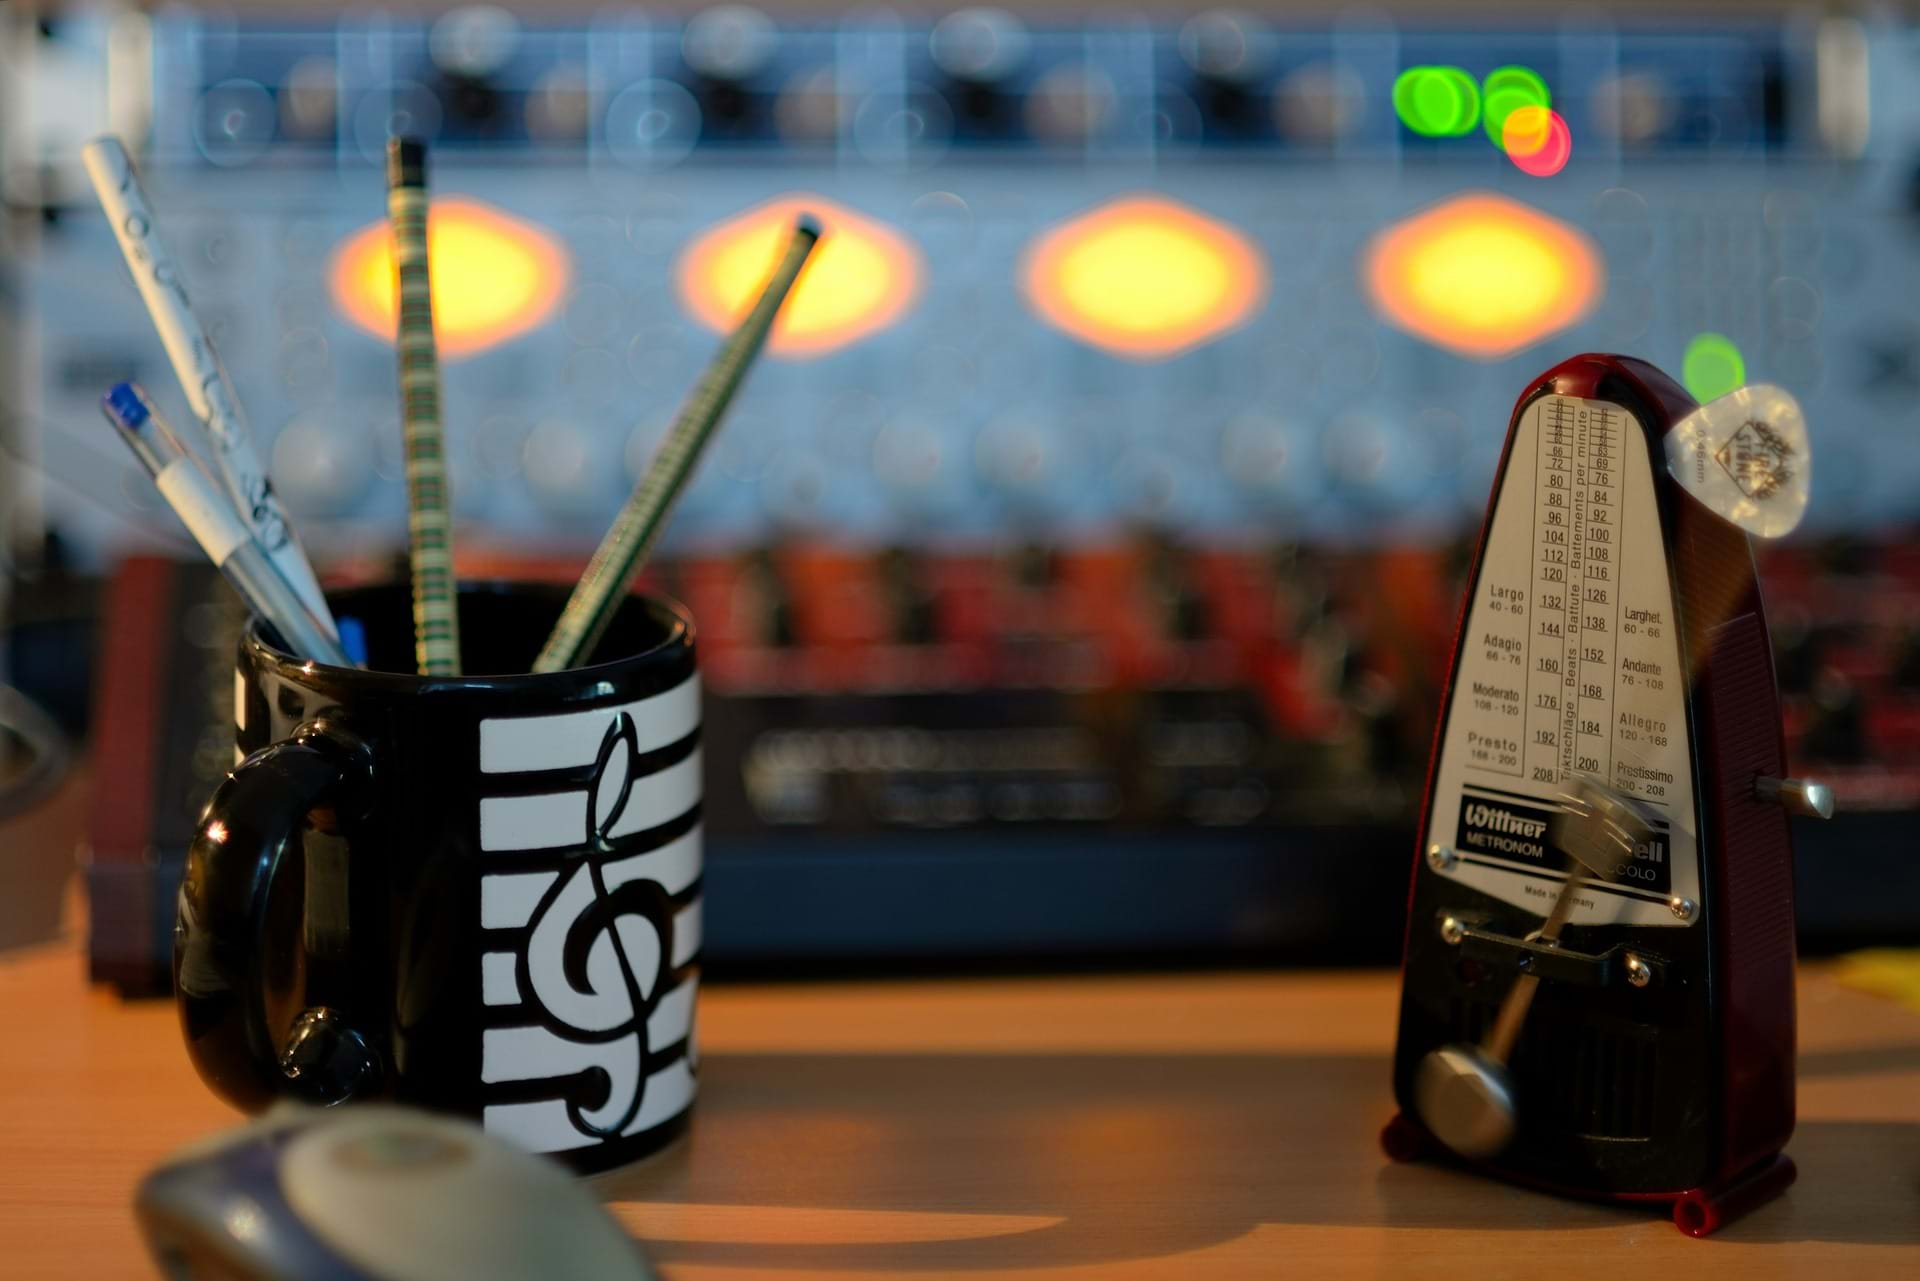 A metronome with a cup with a music note with pens